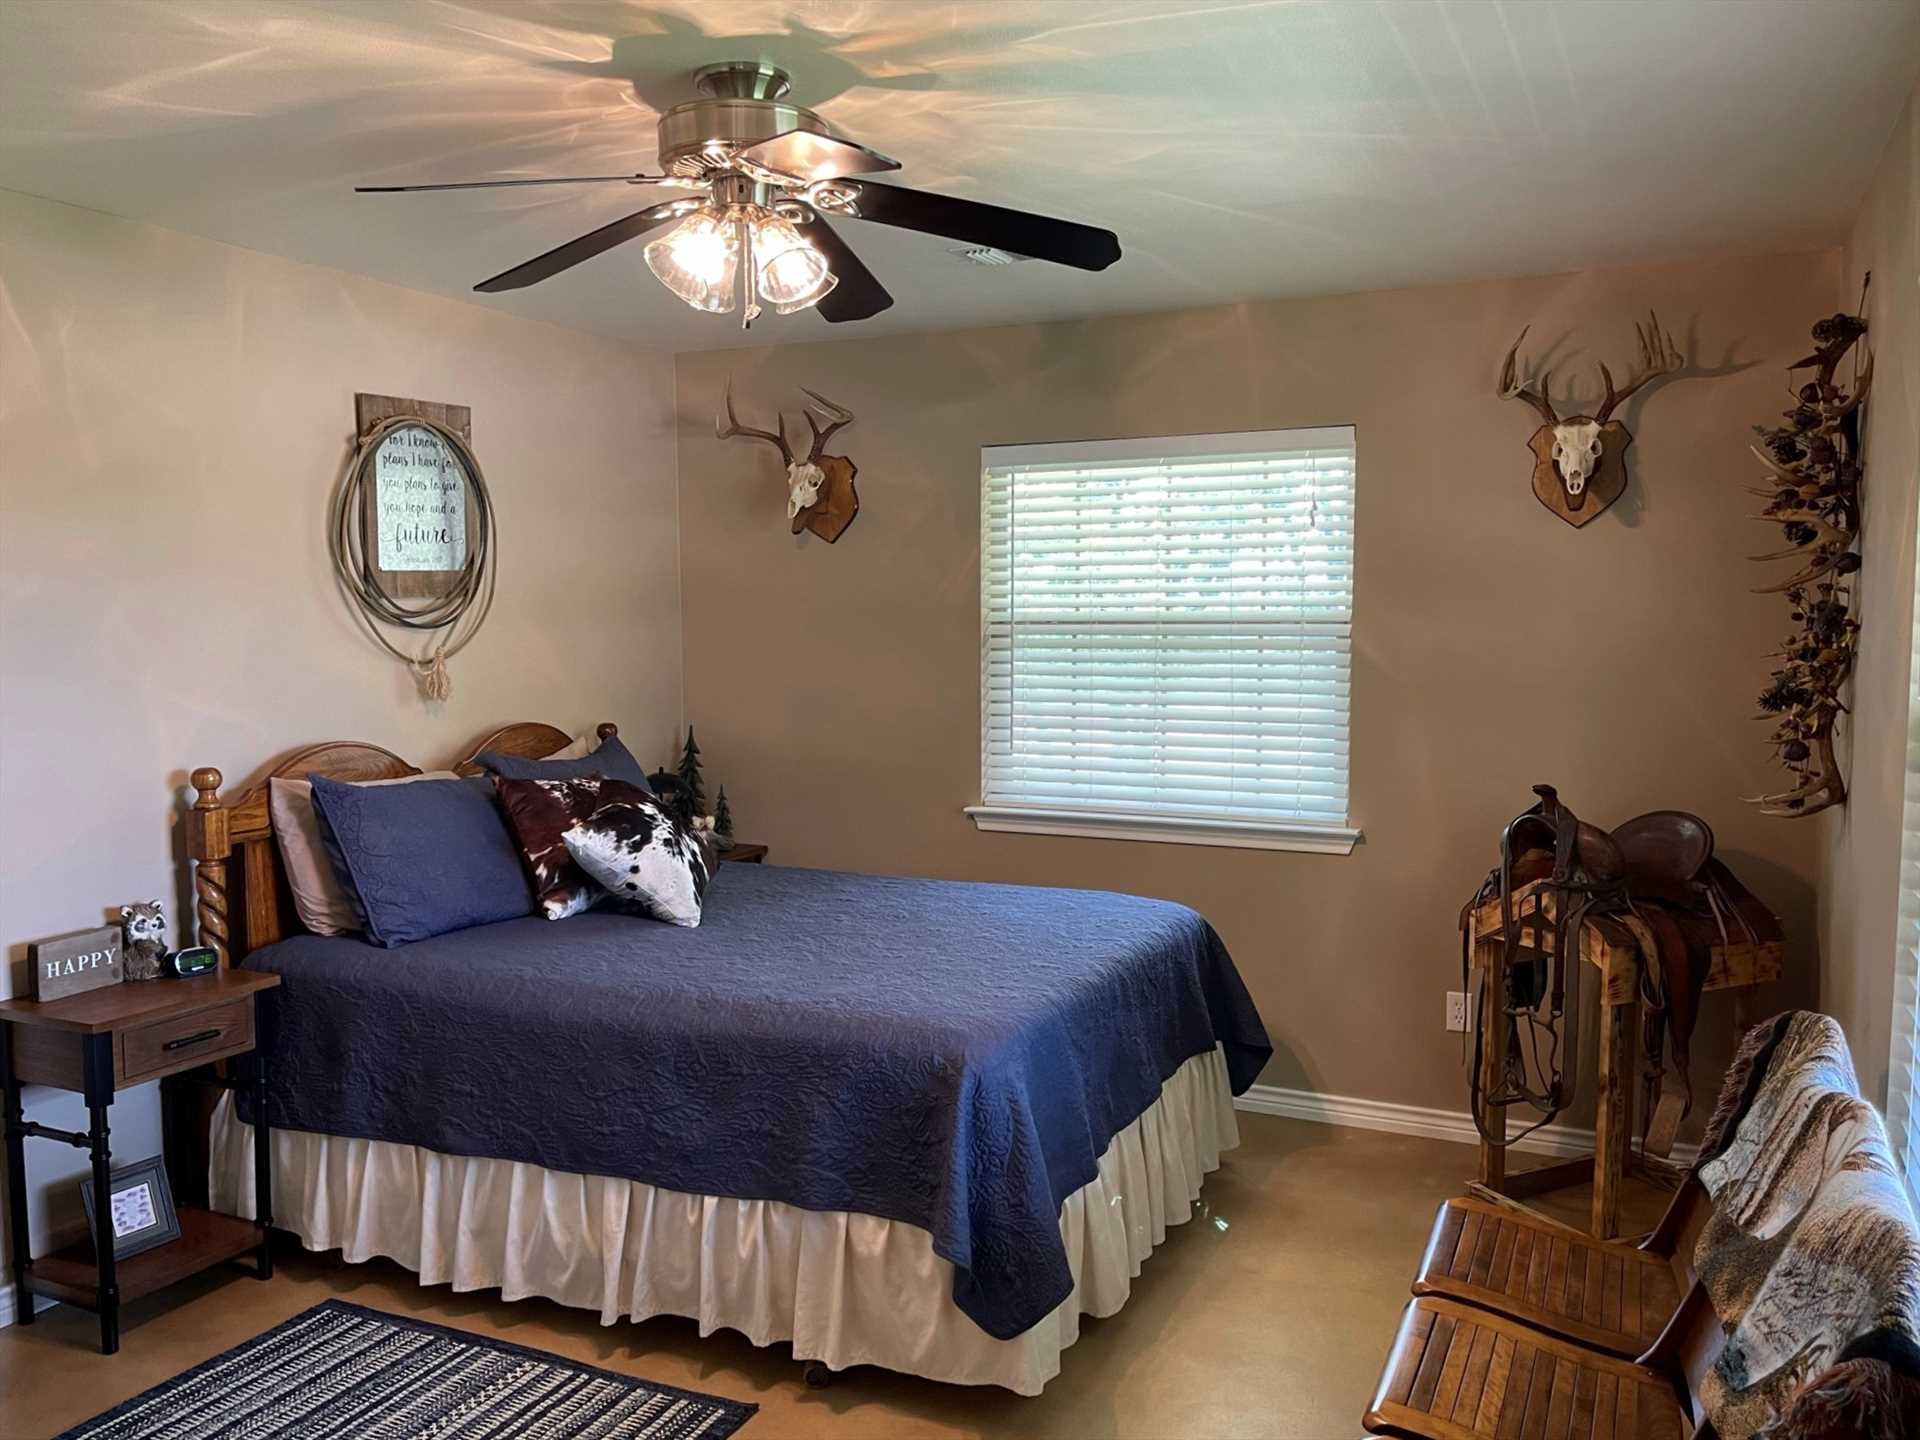 With central AC and heat, as well as speed-adjustable ceiling fans in every room, your comfort inside the home is assured.